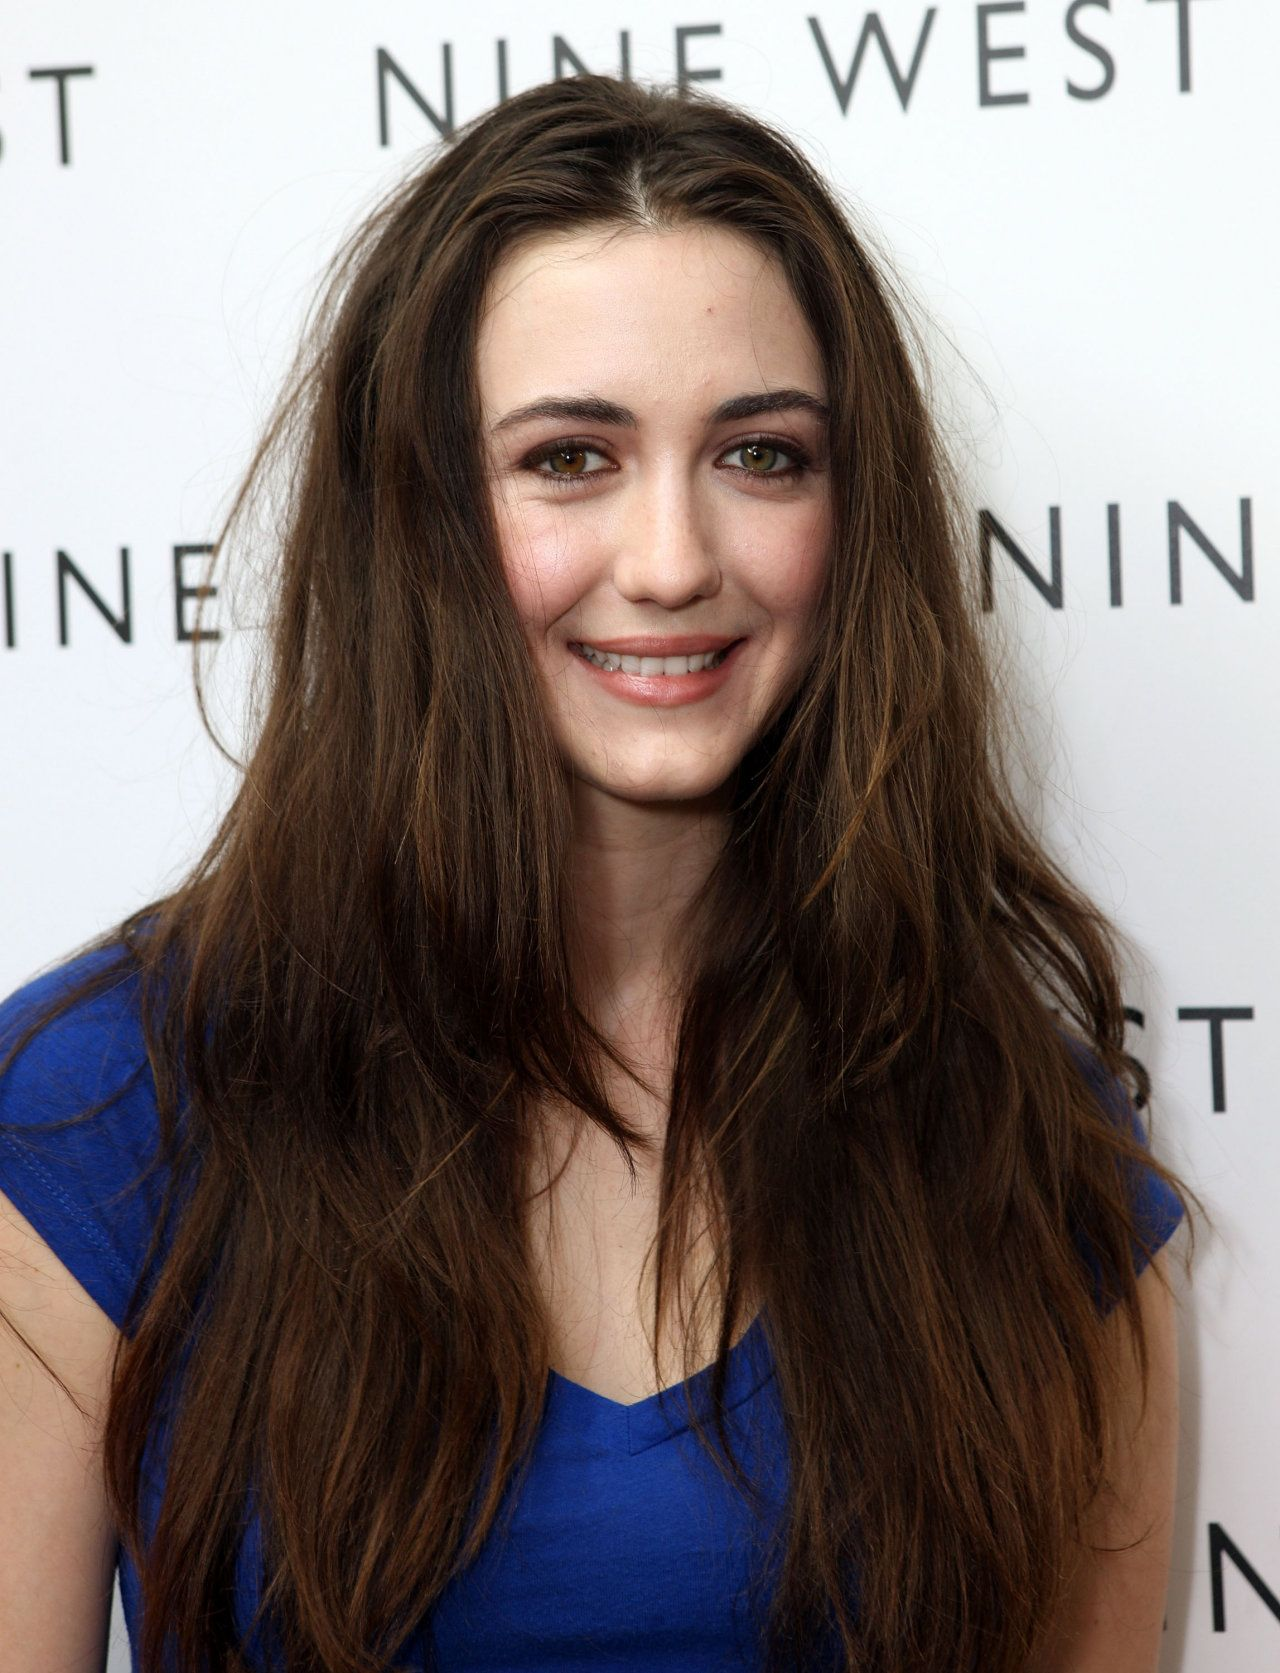 Madeline Zima born September 16, 1985 (age 33)